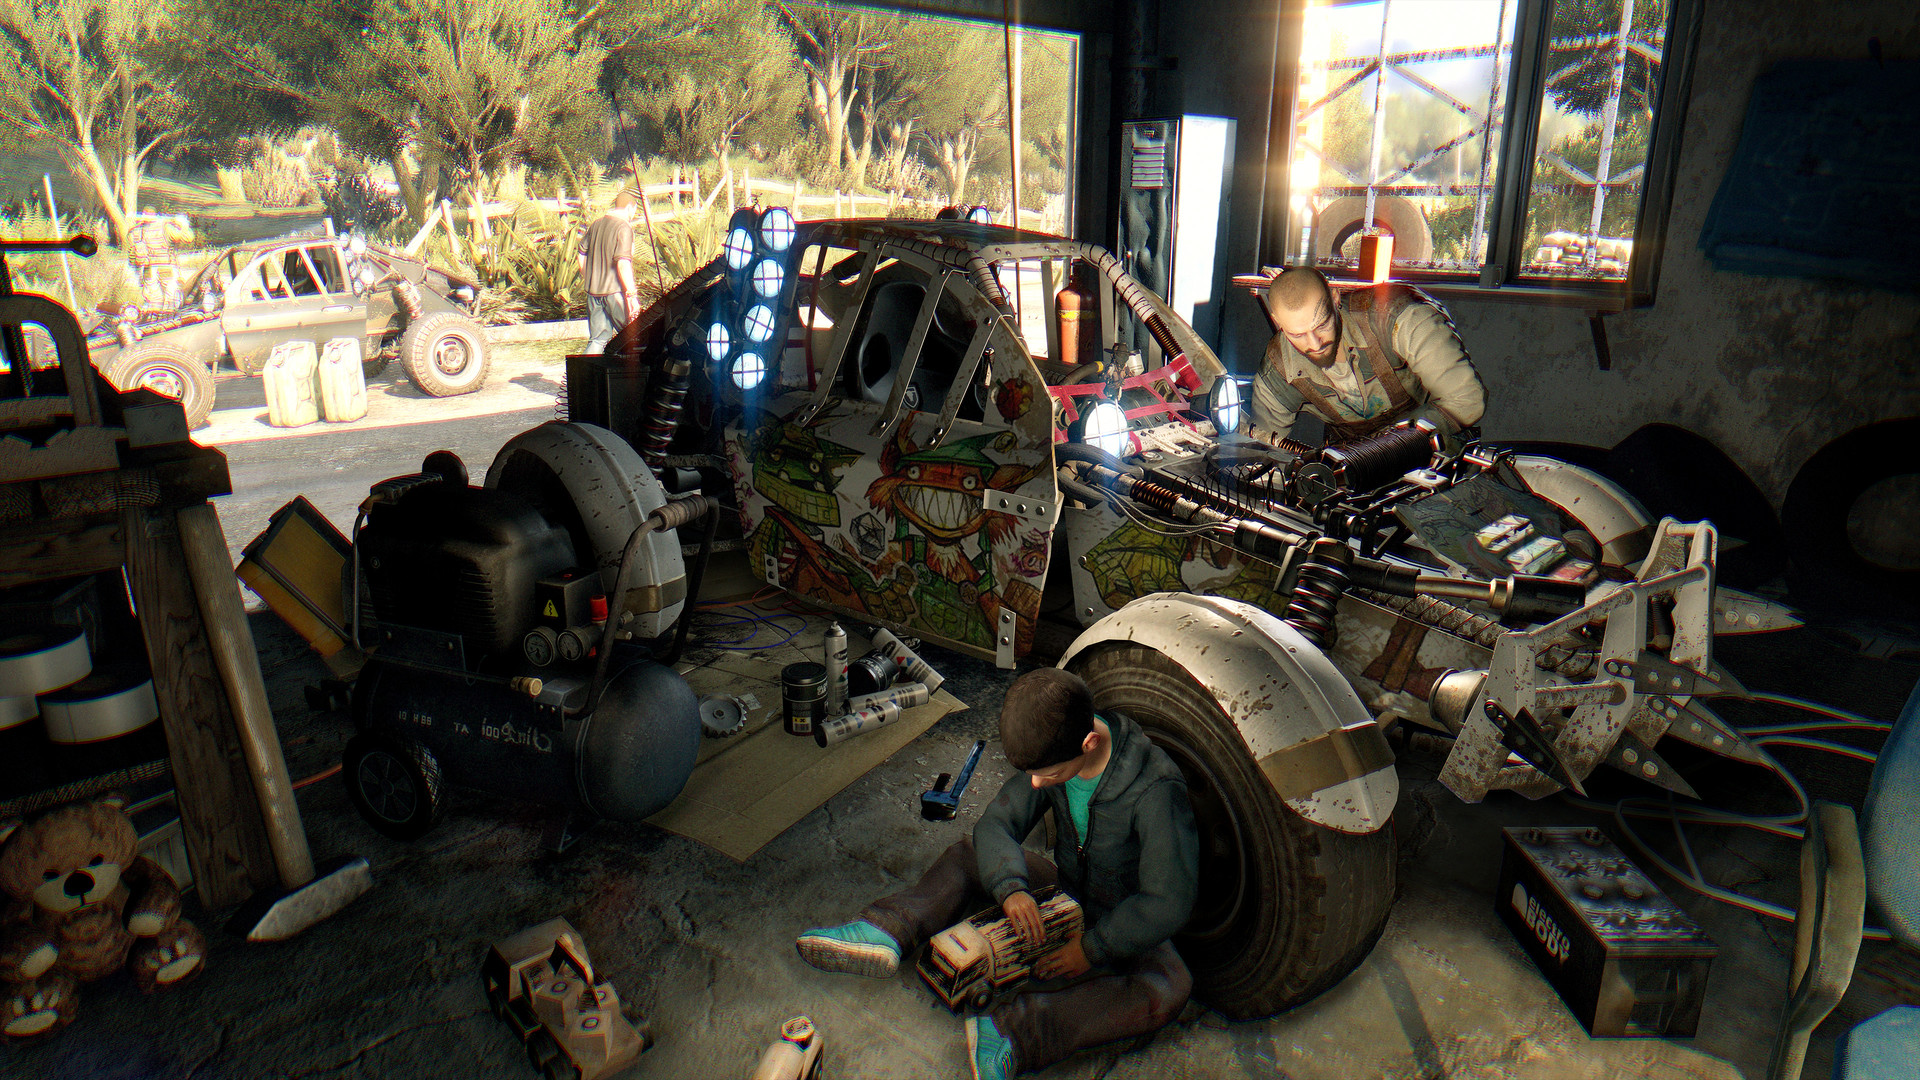 Buggy dying light wiki fandom powered by wikia the following 6 malvernweather Choice Image